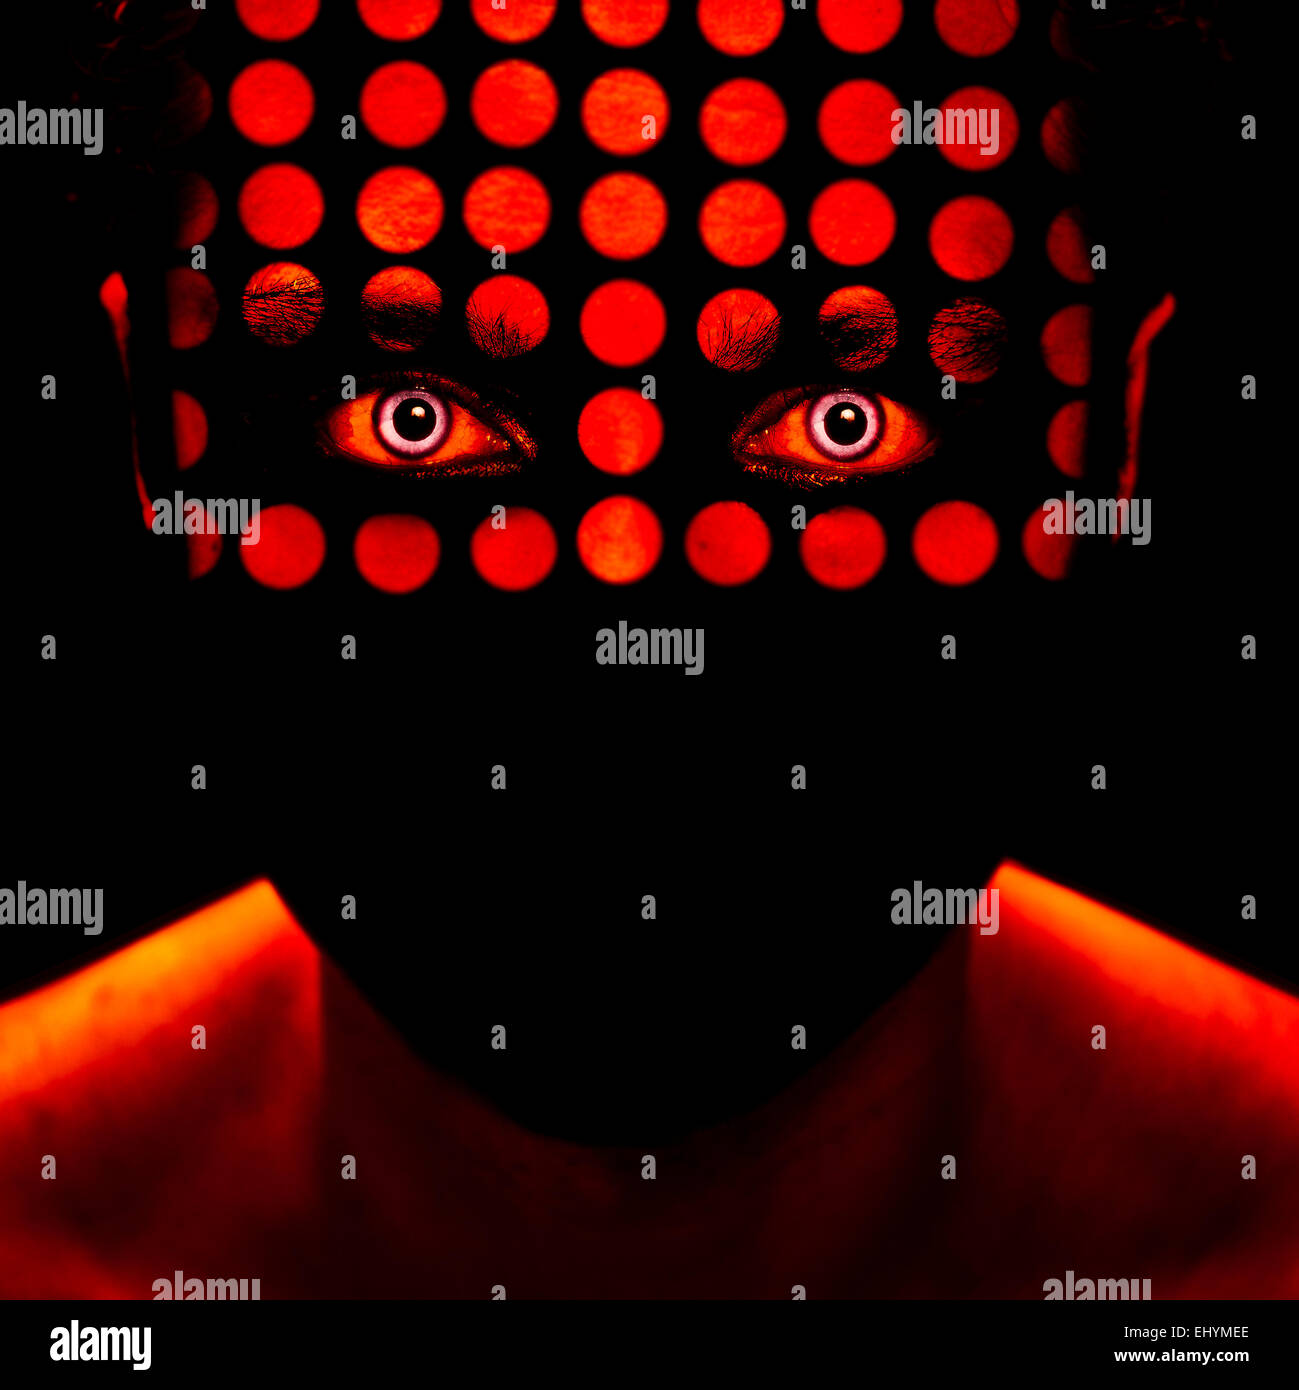 Man's face with red dots - Stock Image